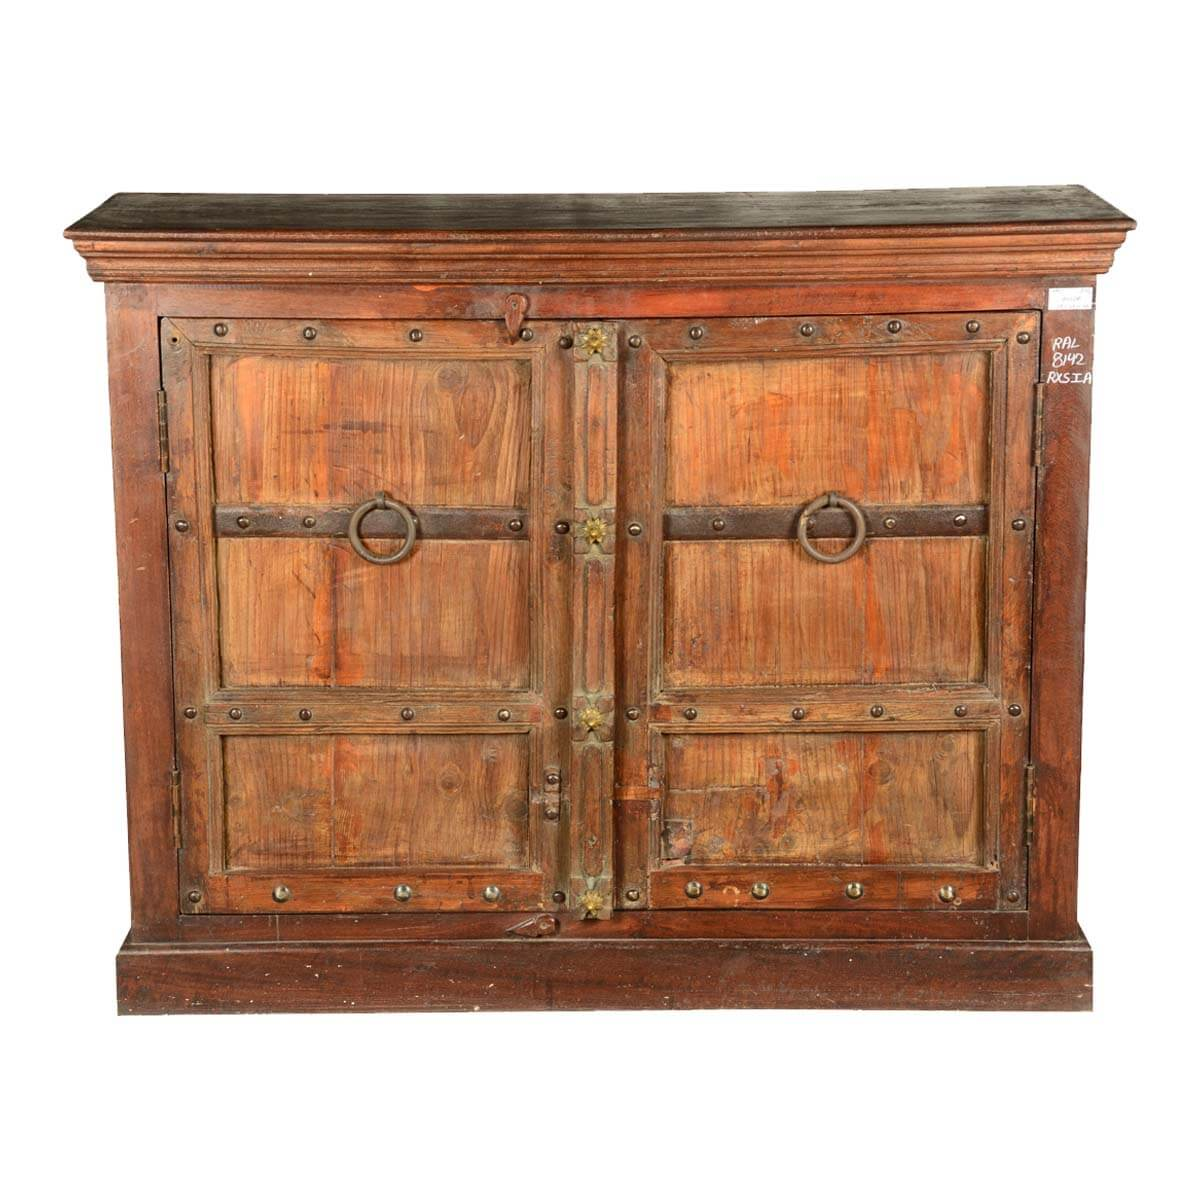 Simply gothic reclaimed wood rustic sideboard buffet cabinet